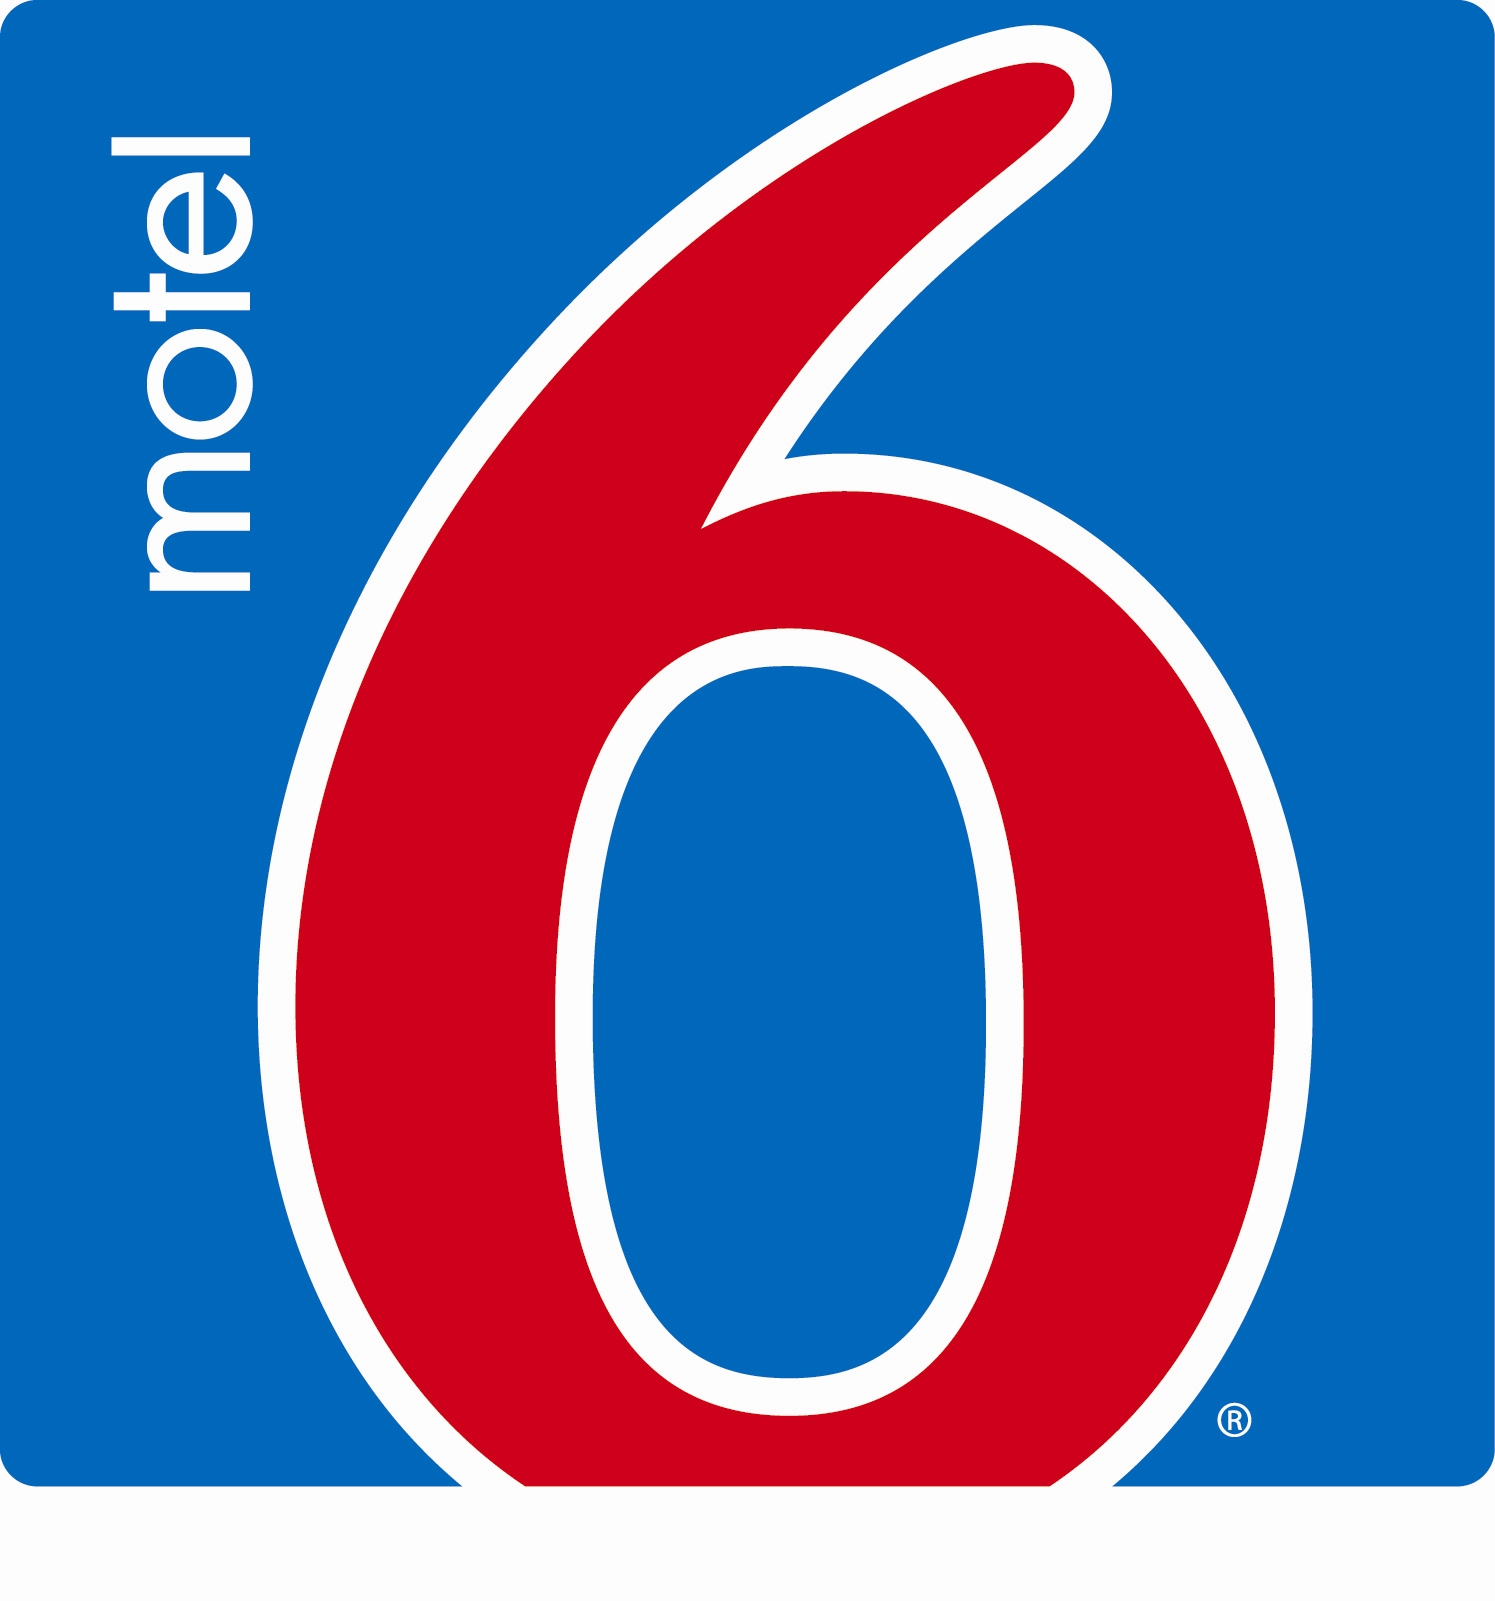 Motel 6   Wikipedia The Free Encyclopedia